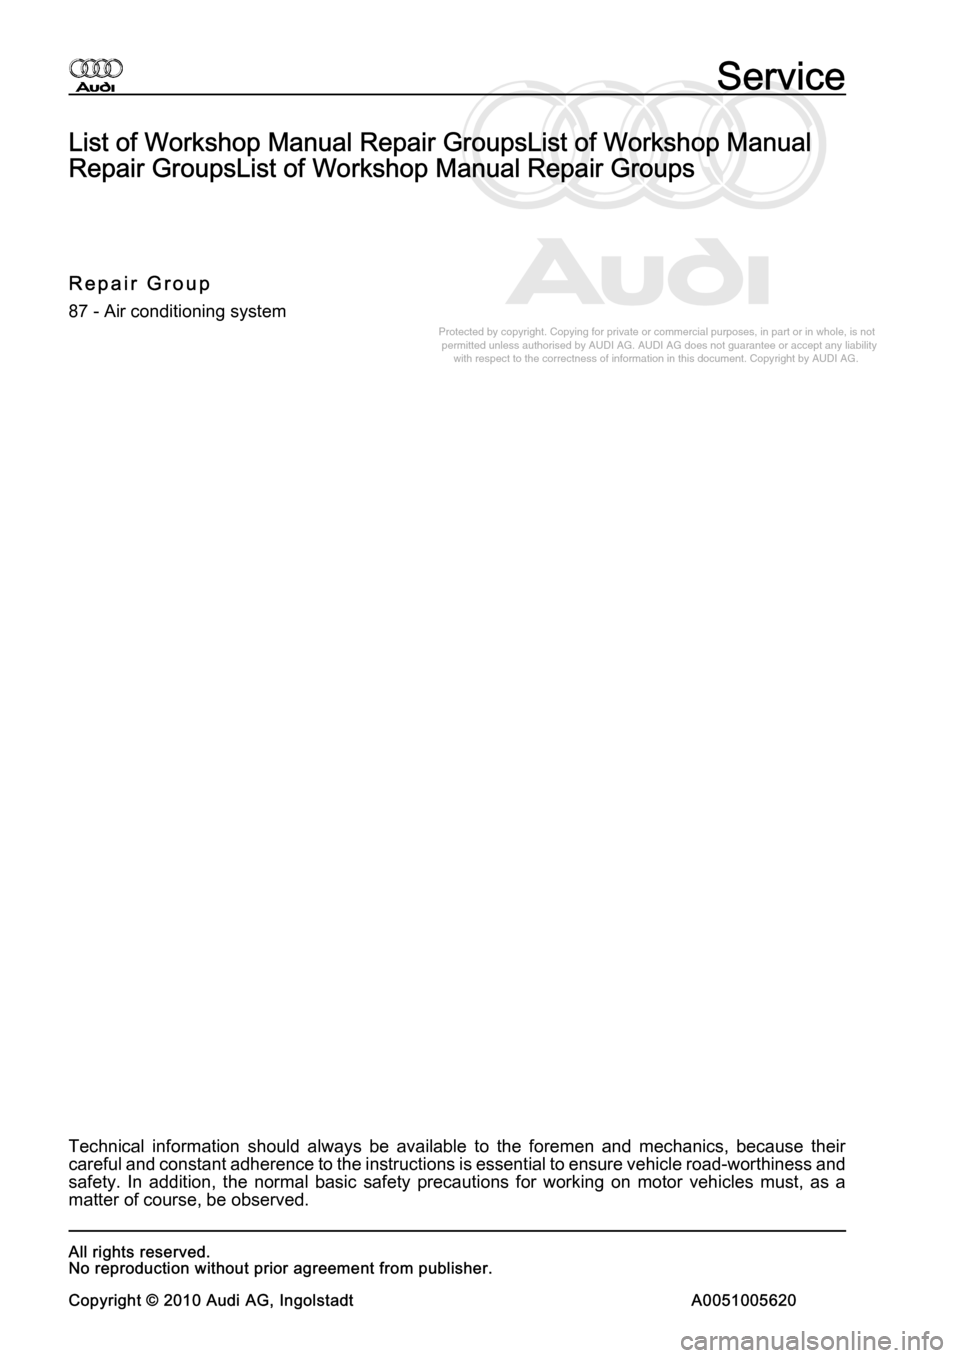 AUDI A8 2003 D3 / 2.G Air Condition Workshop Manual, Page 2